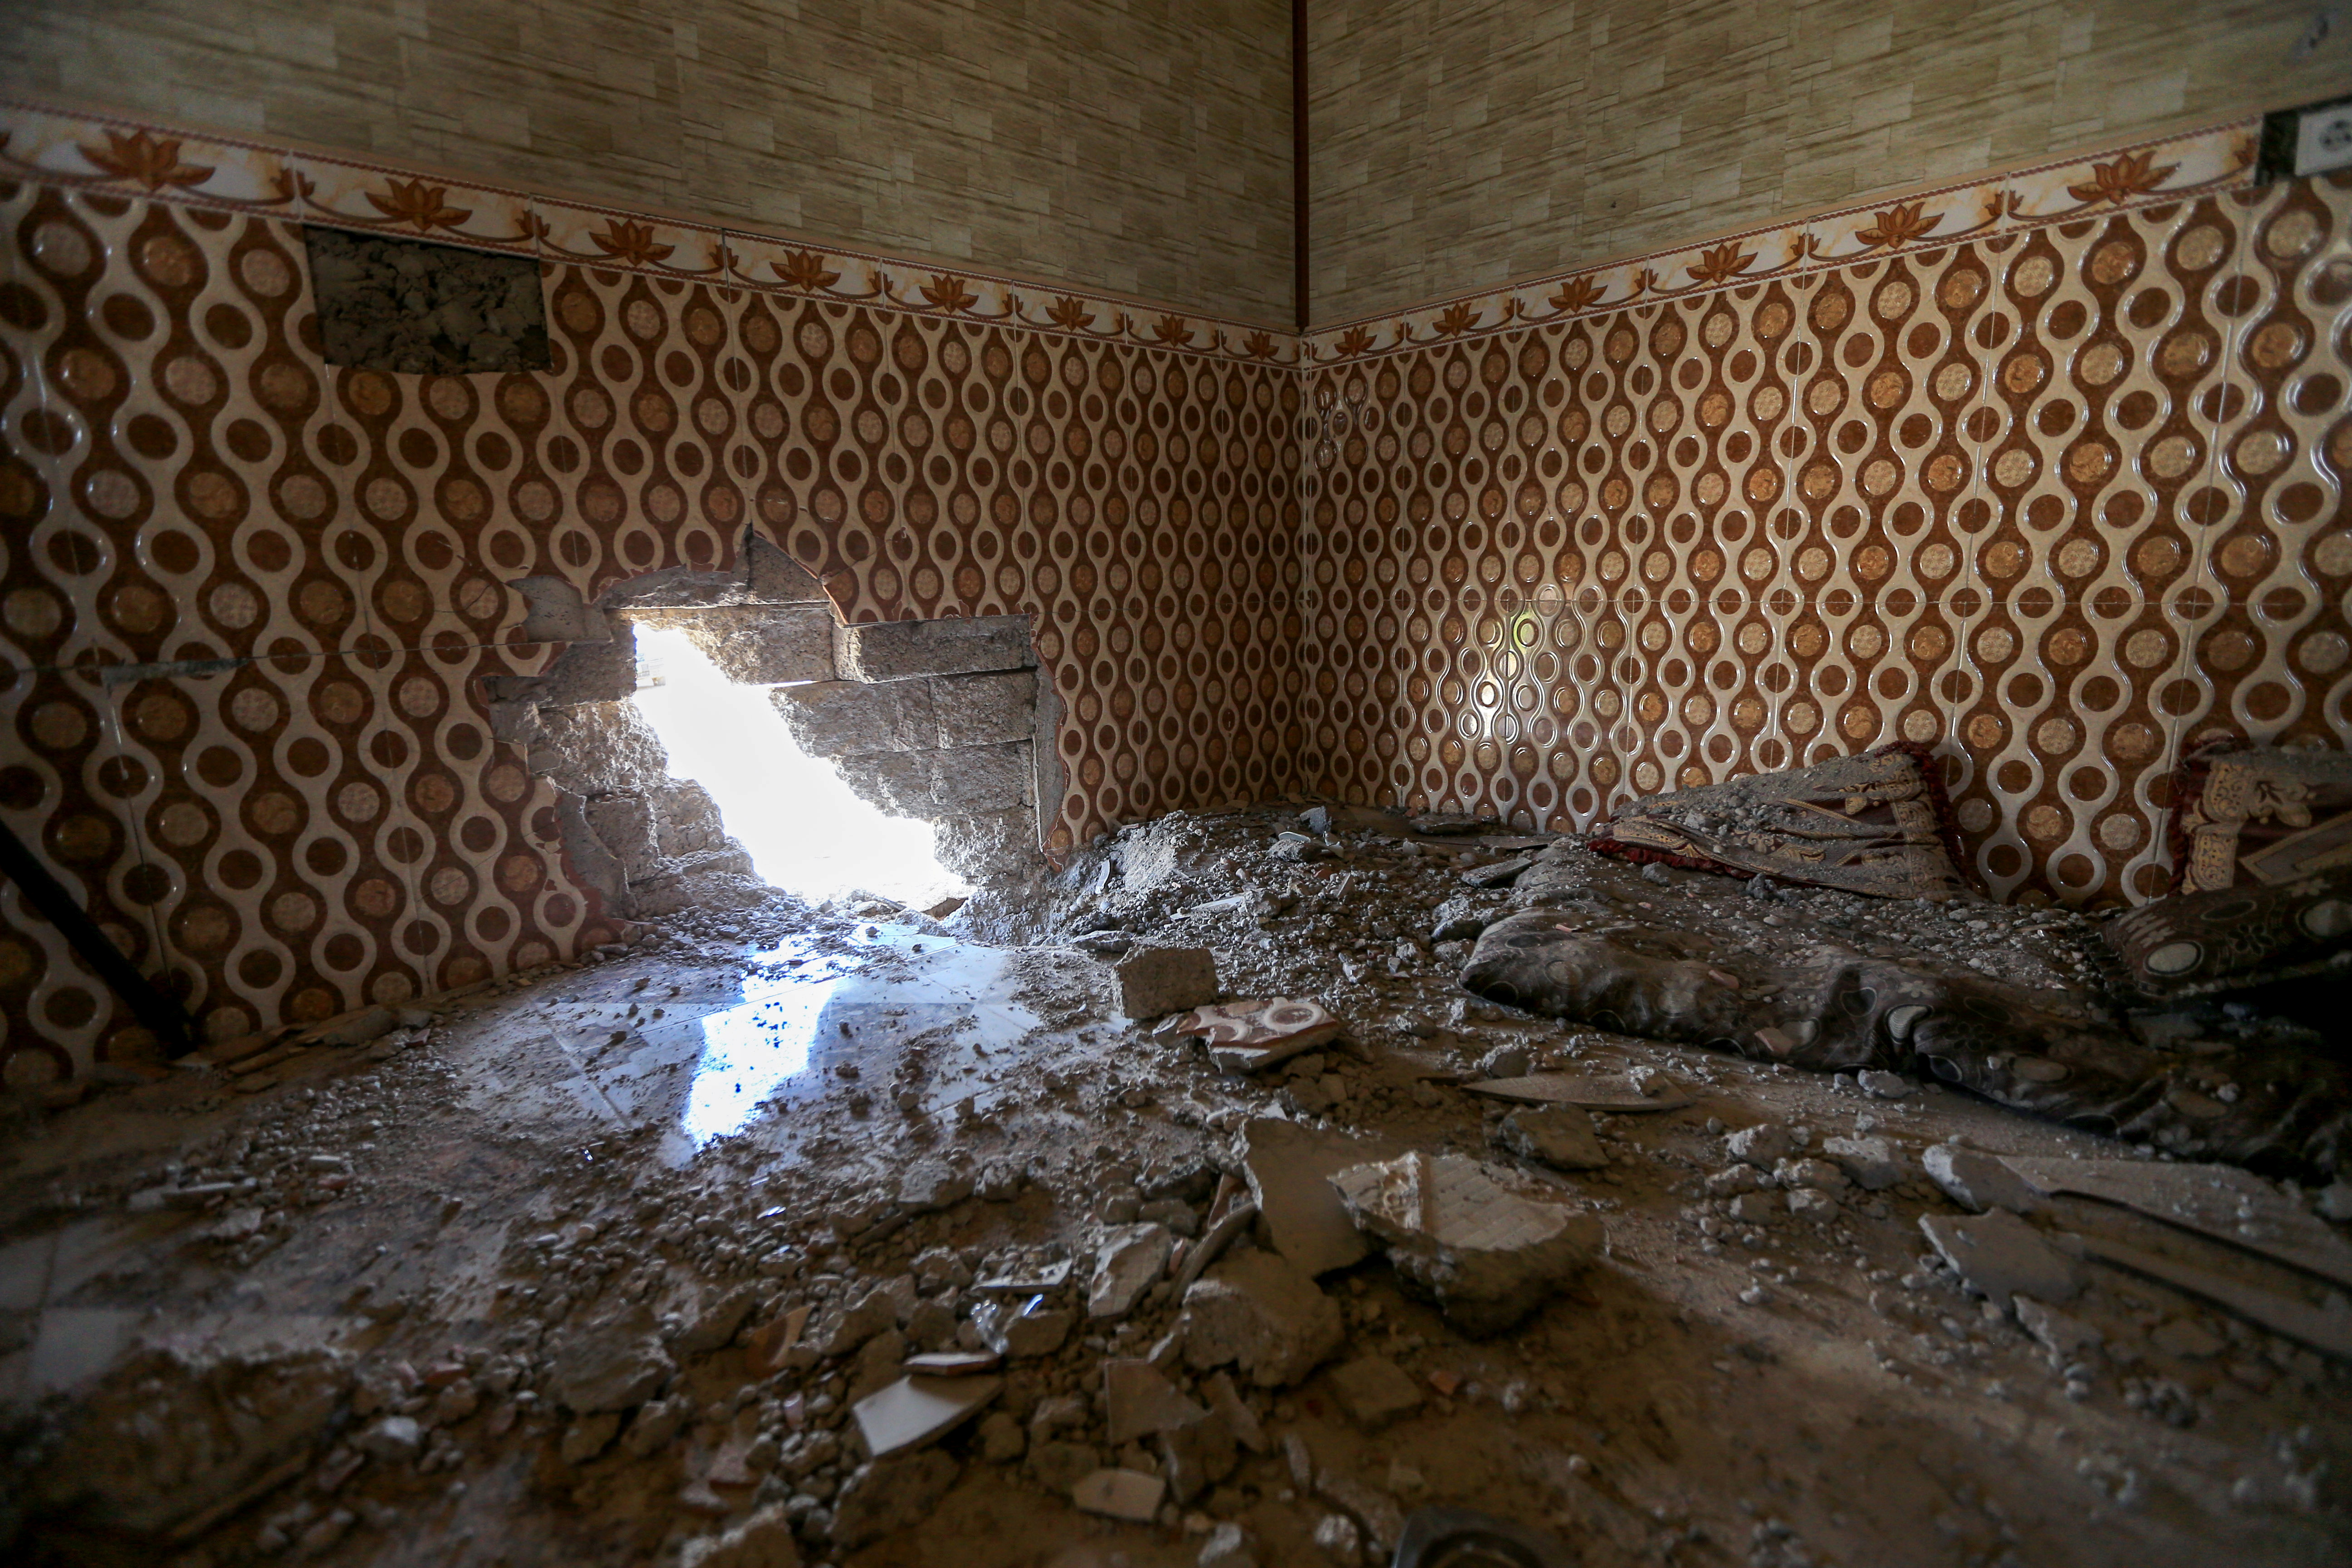 A damaged house is seen after a rocket attack on a military compound, at a village in Bashiqa region, Iraq, April 15, 2021. REUTERS/Ari Jalal